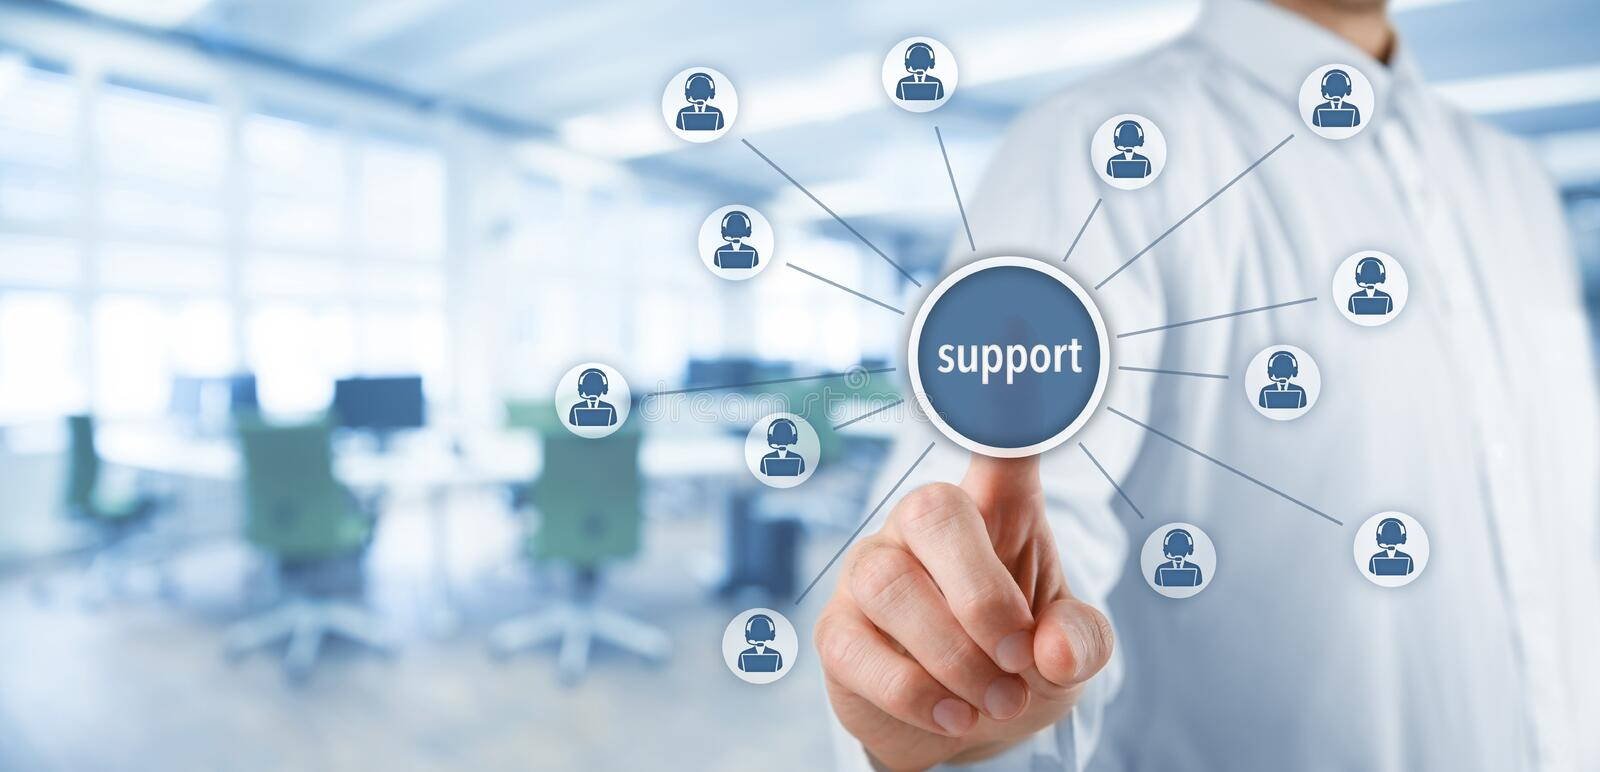 Customer care support royalty free stock photos